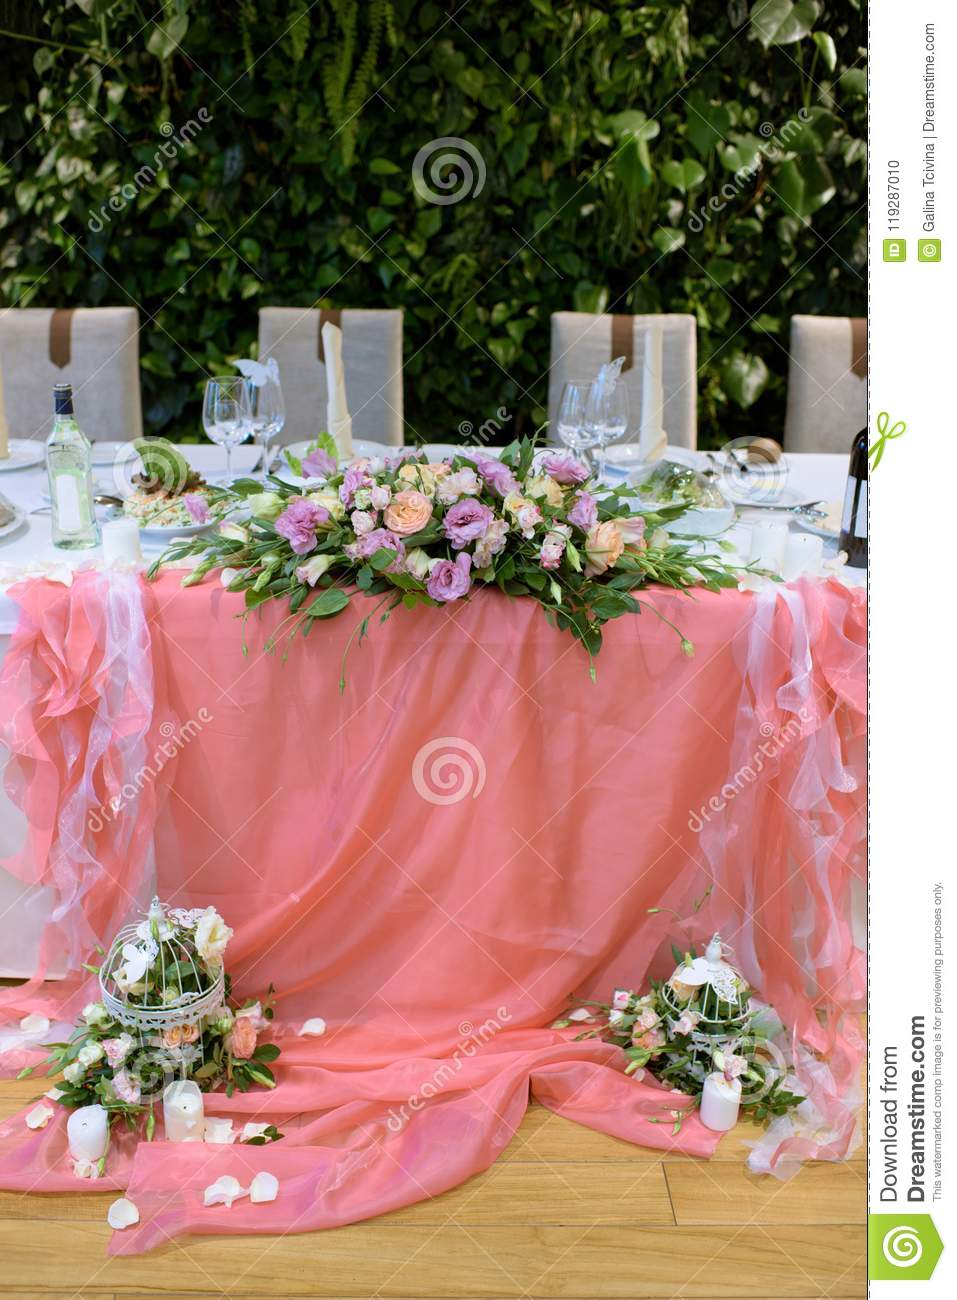 Beautiful Wedding Restaurant For Marriage Stock Photo - Image of ...